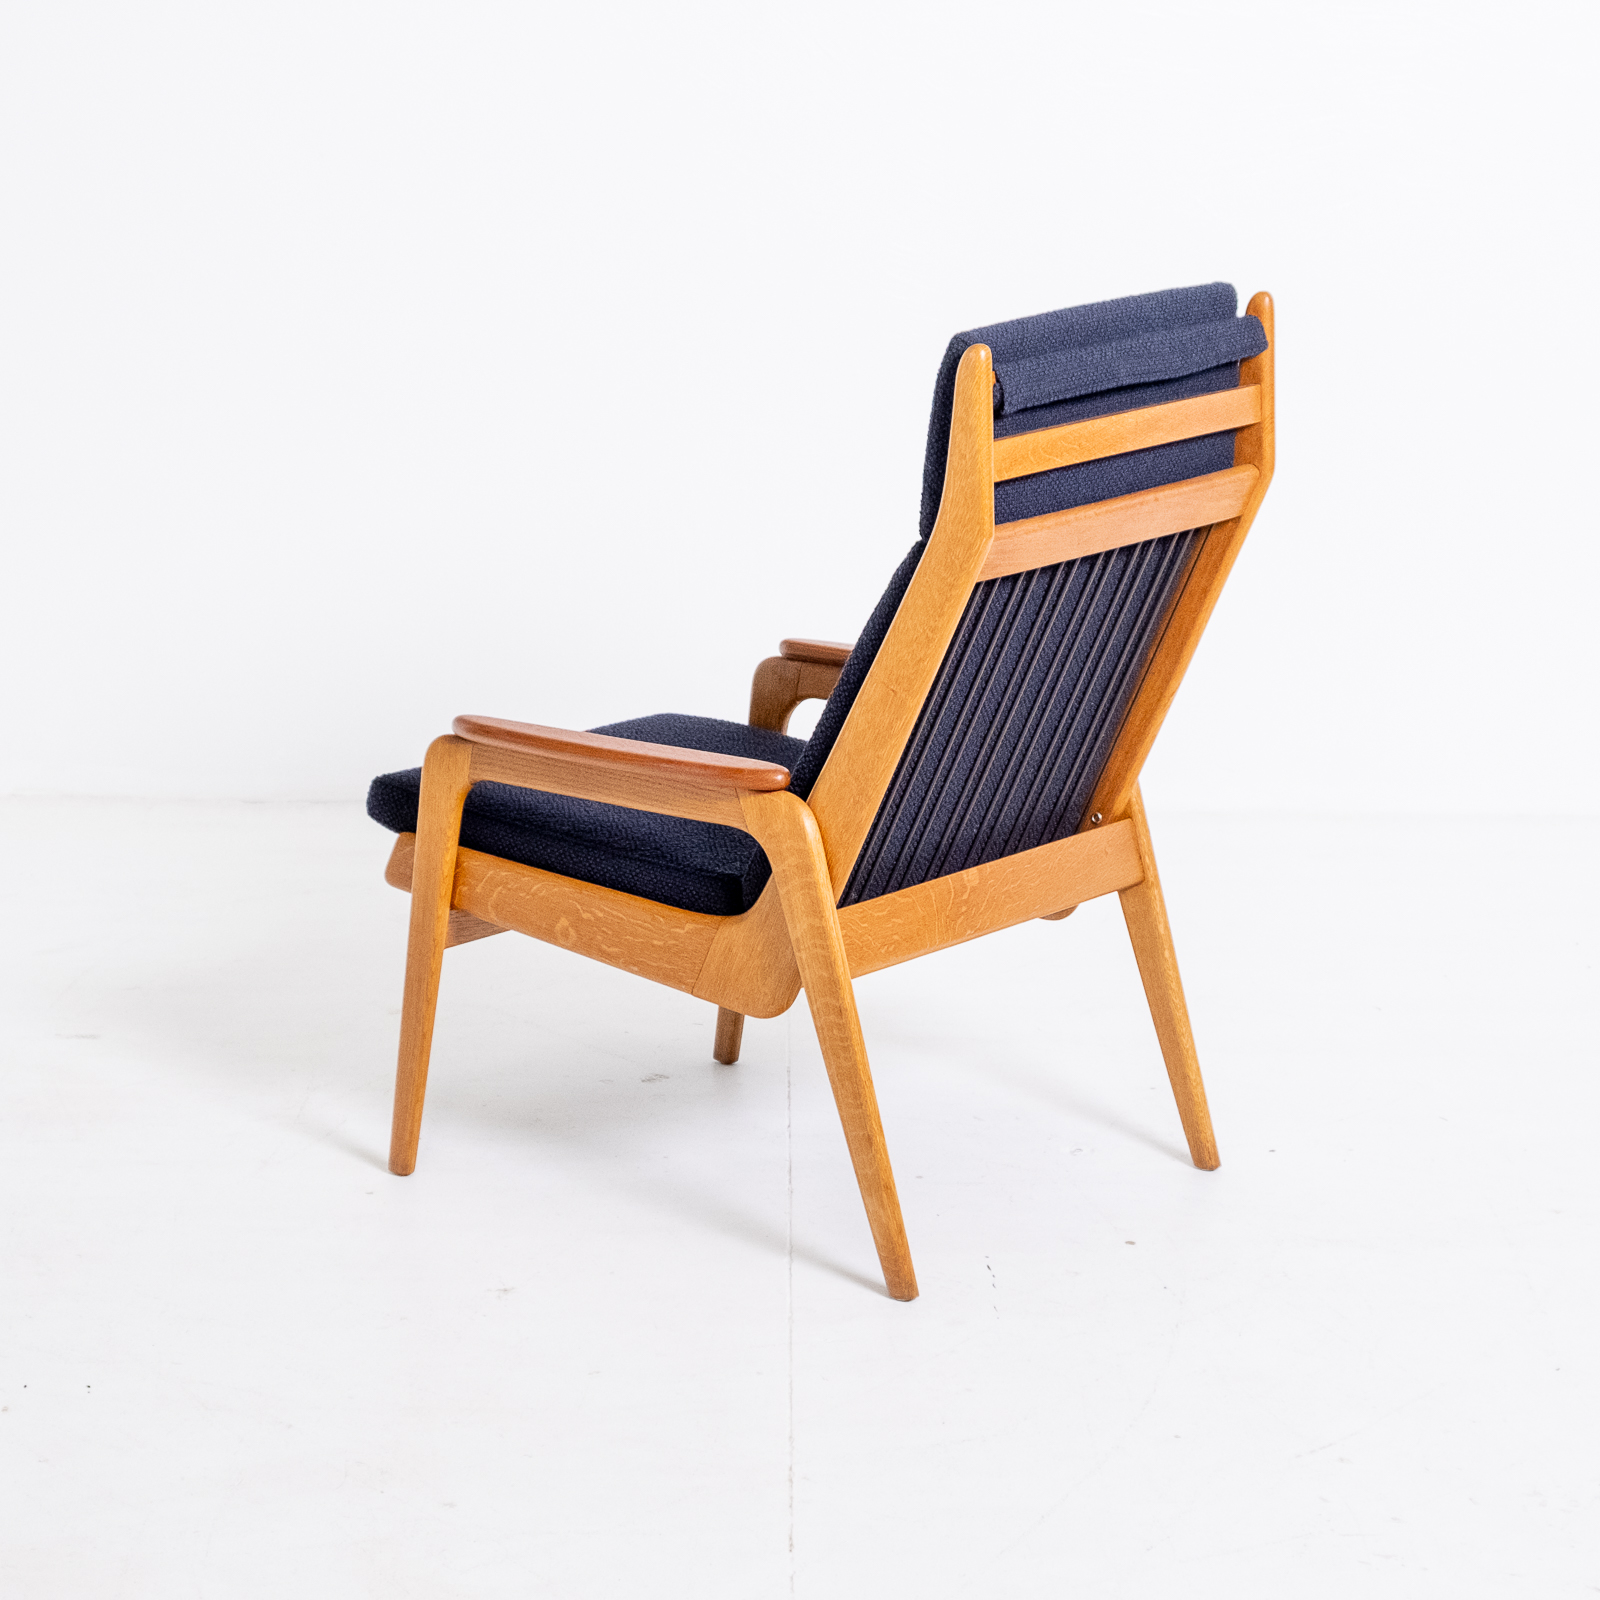 Lotus Armchair By Rob Parry For De Ster Gelderland, 1950s, The Netherlands 04